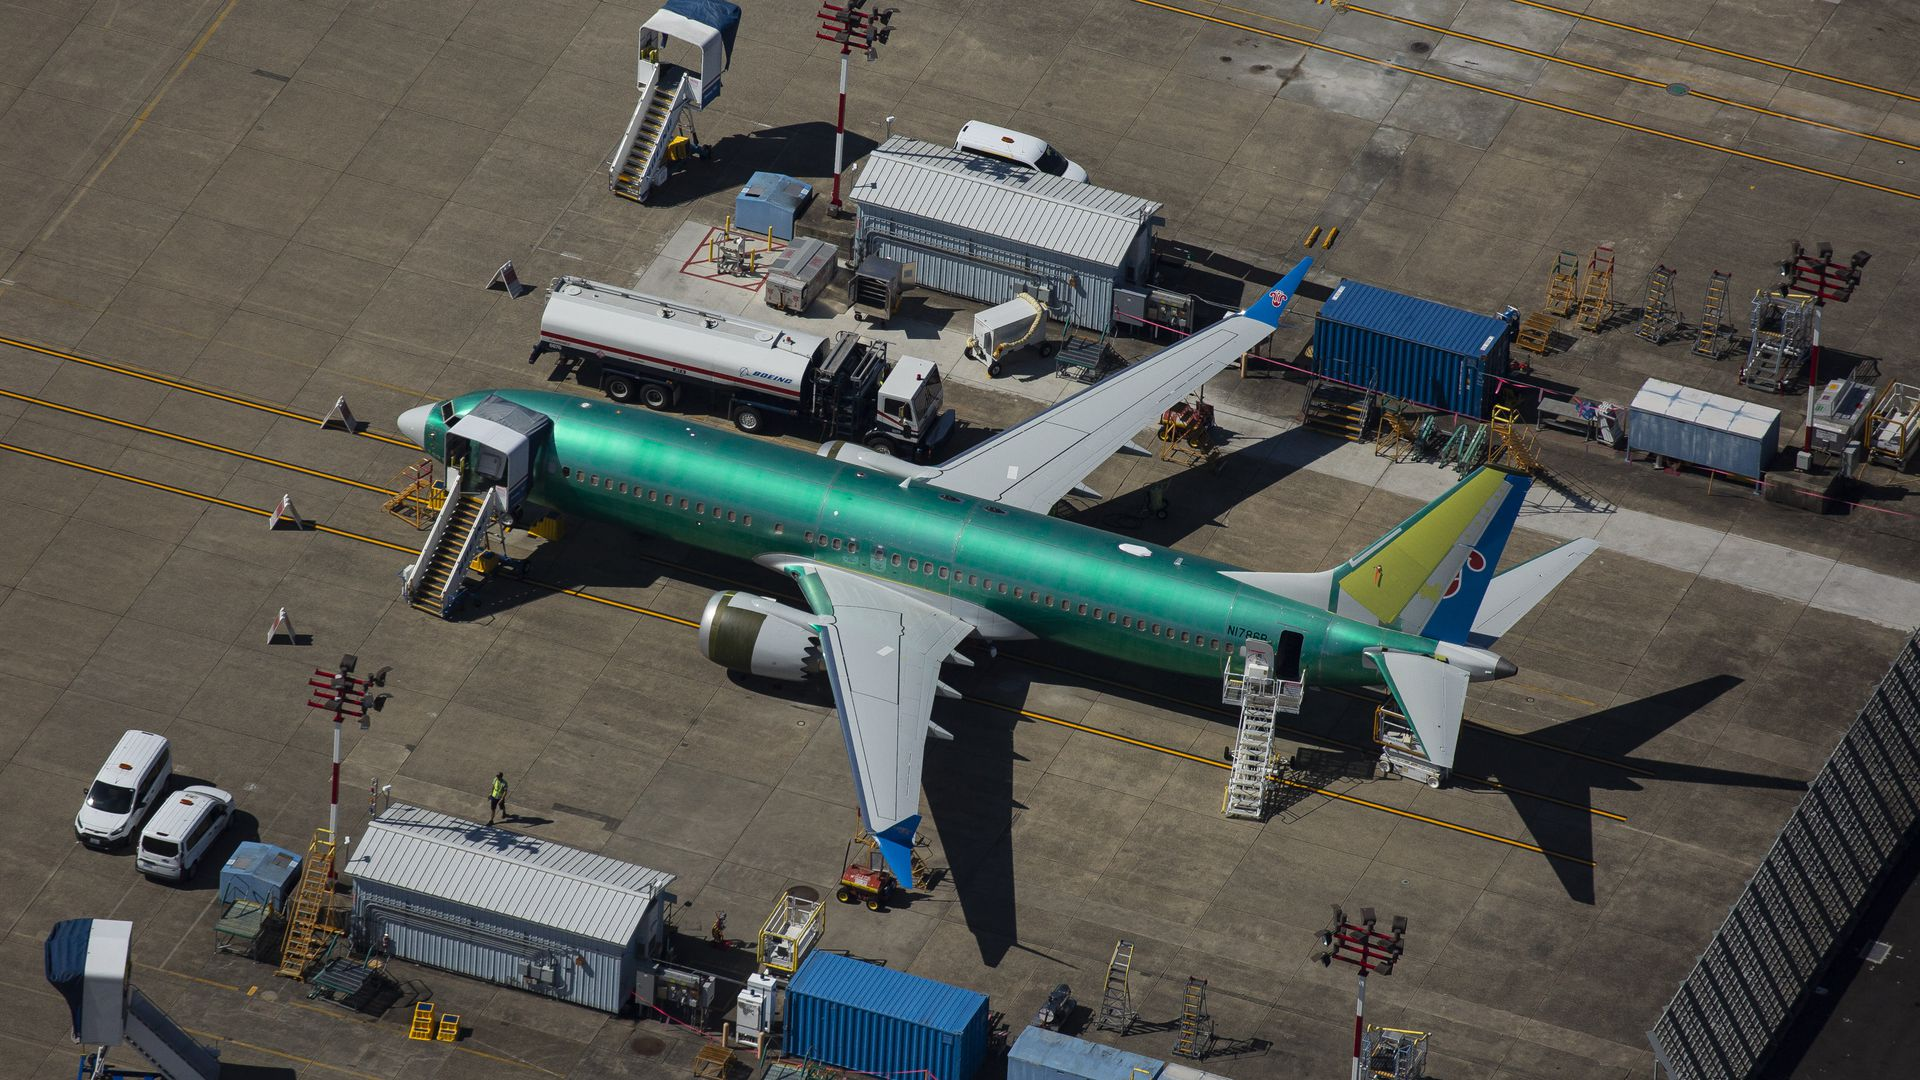 A grounded Boeing 737 MAX